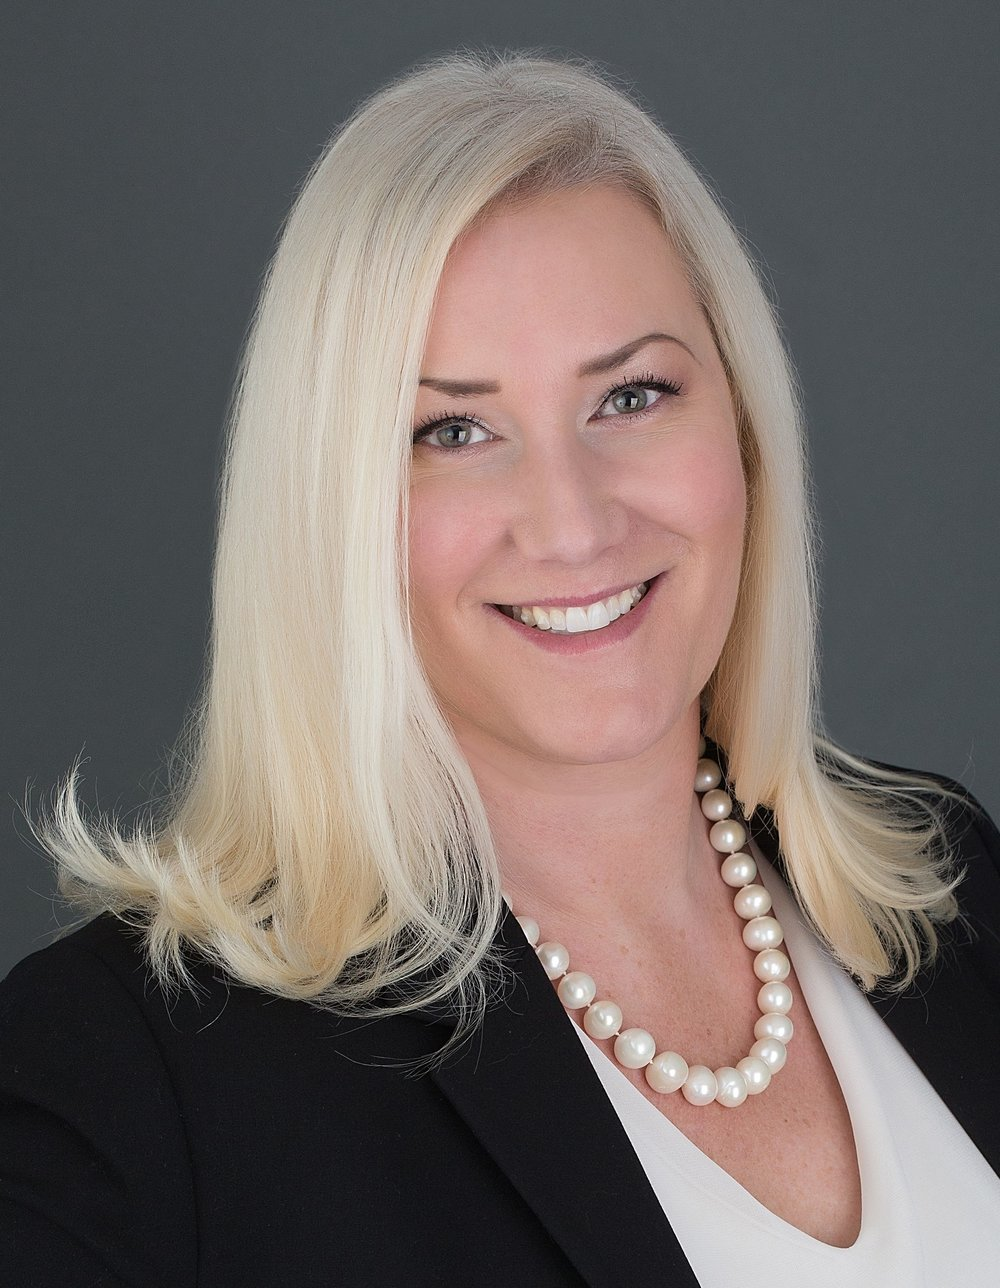 Elisa Pratt, MA, CAEExpertise: Board Engagement   Member Experience   Strategy & Tactics - Elisa, an expert in association management and the membership experience, is a leader in innovative engagement solutions, tactical member development and operational effectiveness strategies. As founder and owner of Brewer Pratt Solutions LLC, Elisa brings her nearly 20 years of experience as an impactful senior staff member for trade and individual membership organizations, both domestic and international. Elisa is a Certified Association Executive (CAE) and holds a MA in Government from Johns Hopkins University. With her unique background in advocacy and activism, membership and stakeholder relations, as well as association management and operations, Elisa's diverse expertise makes her a valuable partner and advisor to both nonprofit and corporate clients.Elisa's LinkedIn profile.